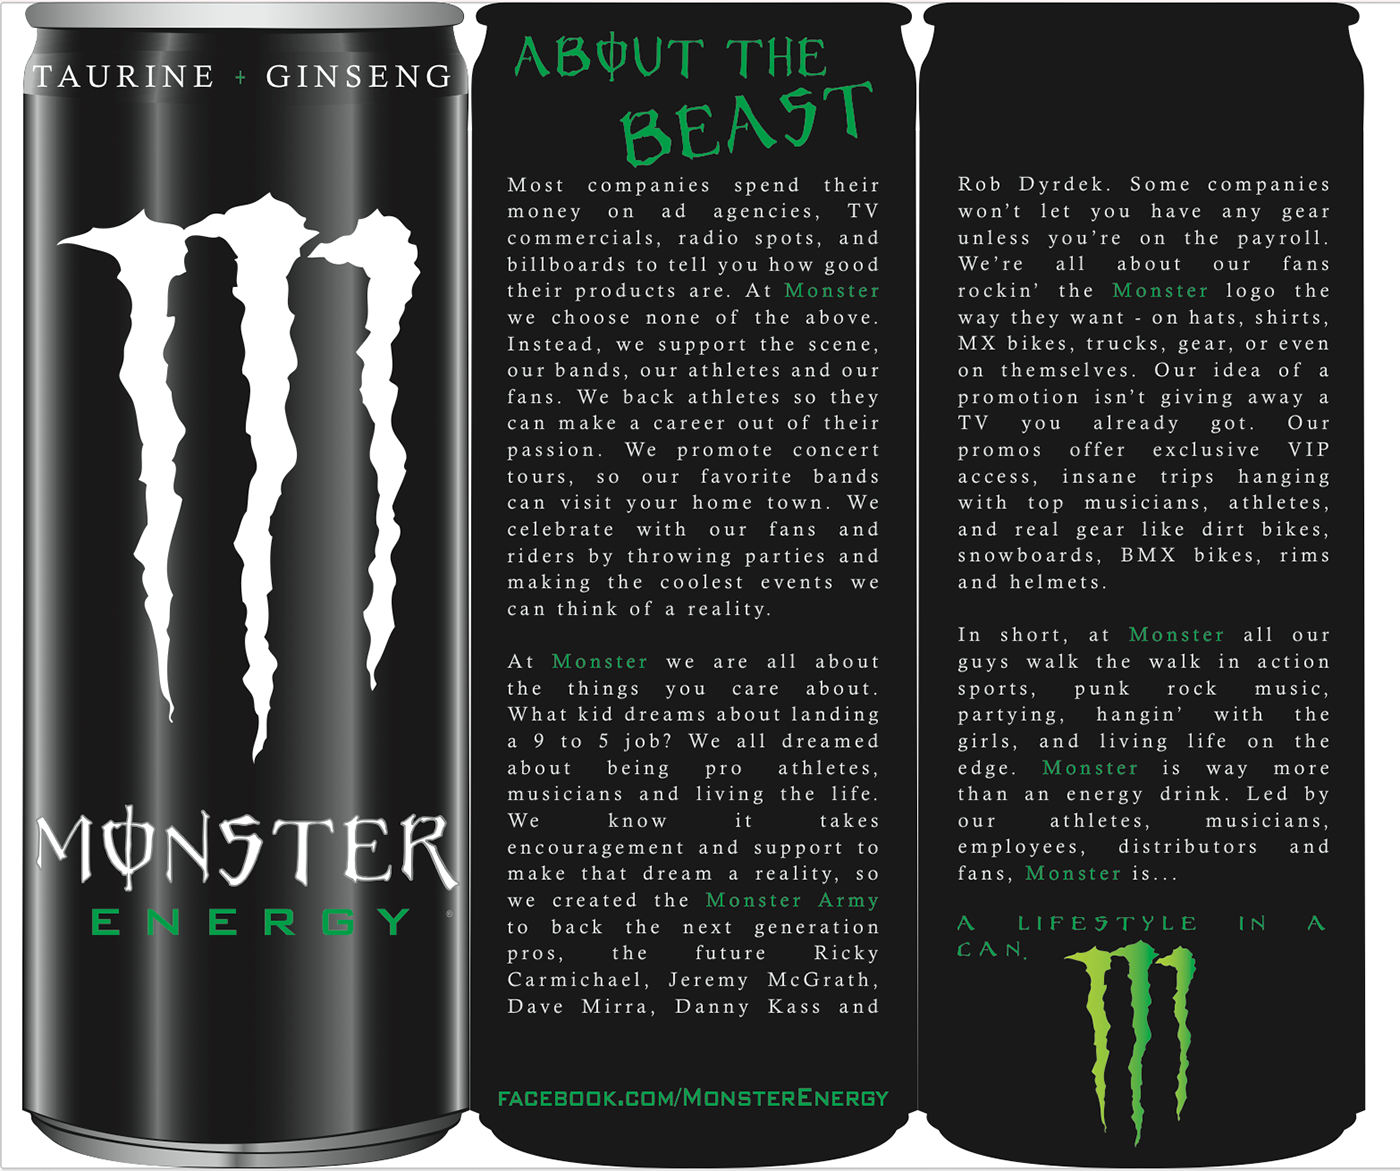 monster energy brochure Read ratings and reviews for energy monster - solar installer, solar energy  auditor, solar electrical contractor, solar general  brochure & media gallery.